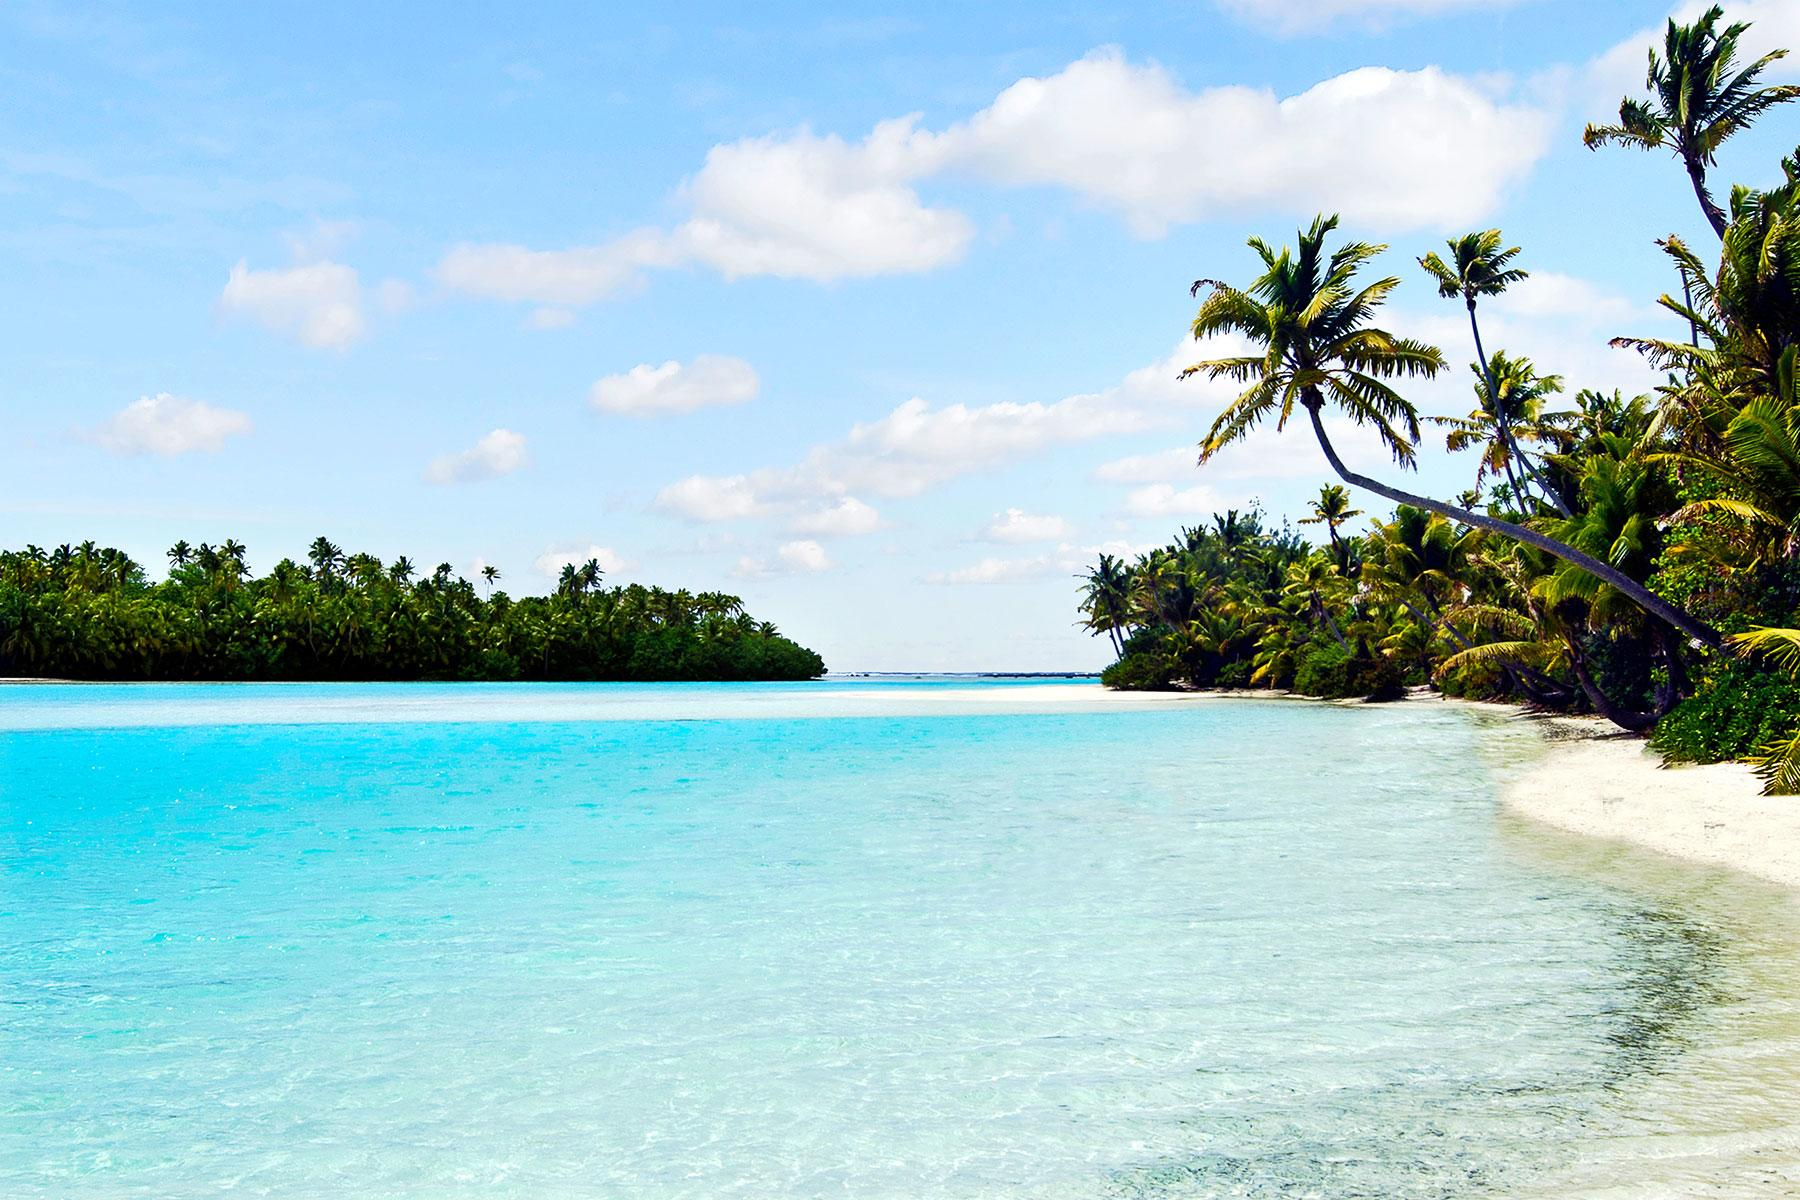 Top 10 Tropical Islands In The South Pacific | X Days In Y |Most Beautiful Beaches South Pacific